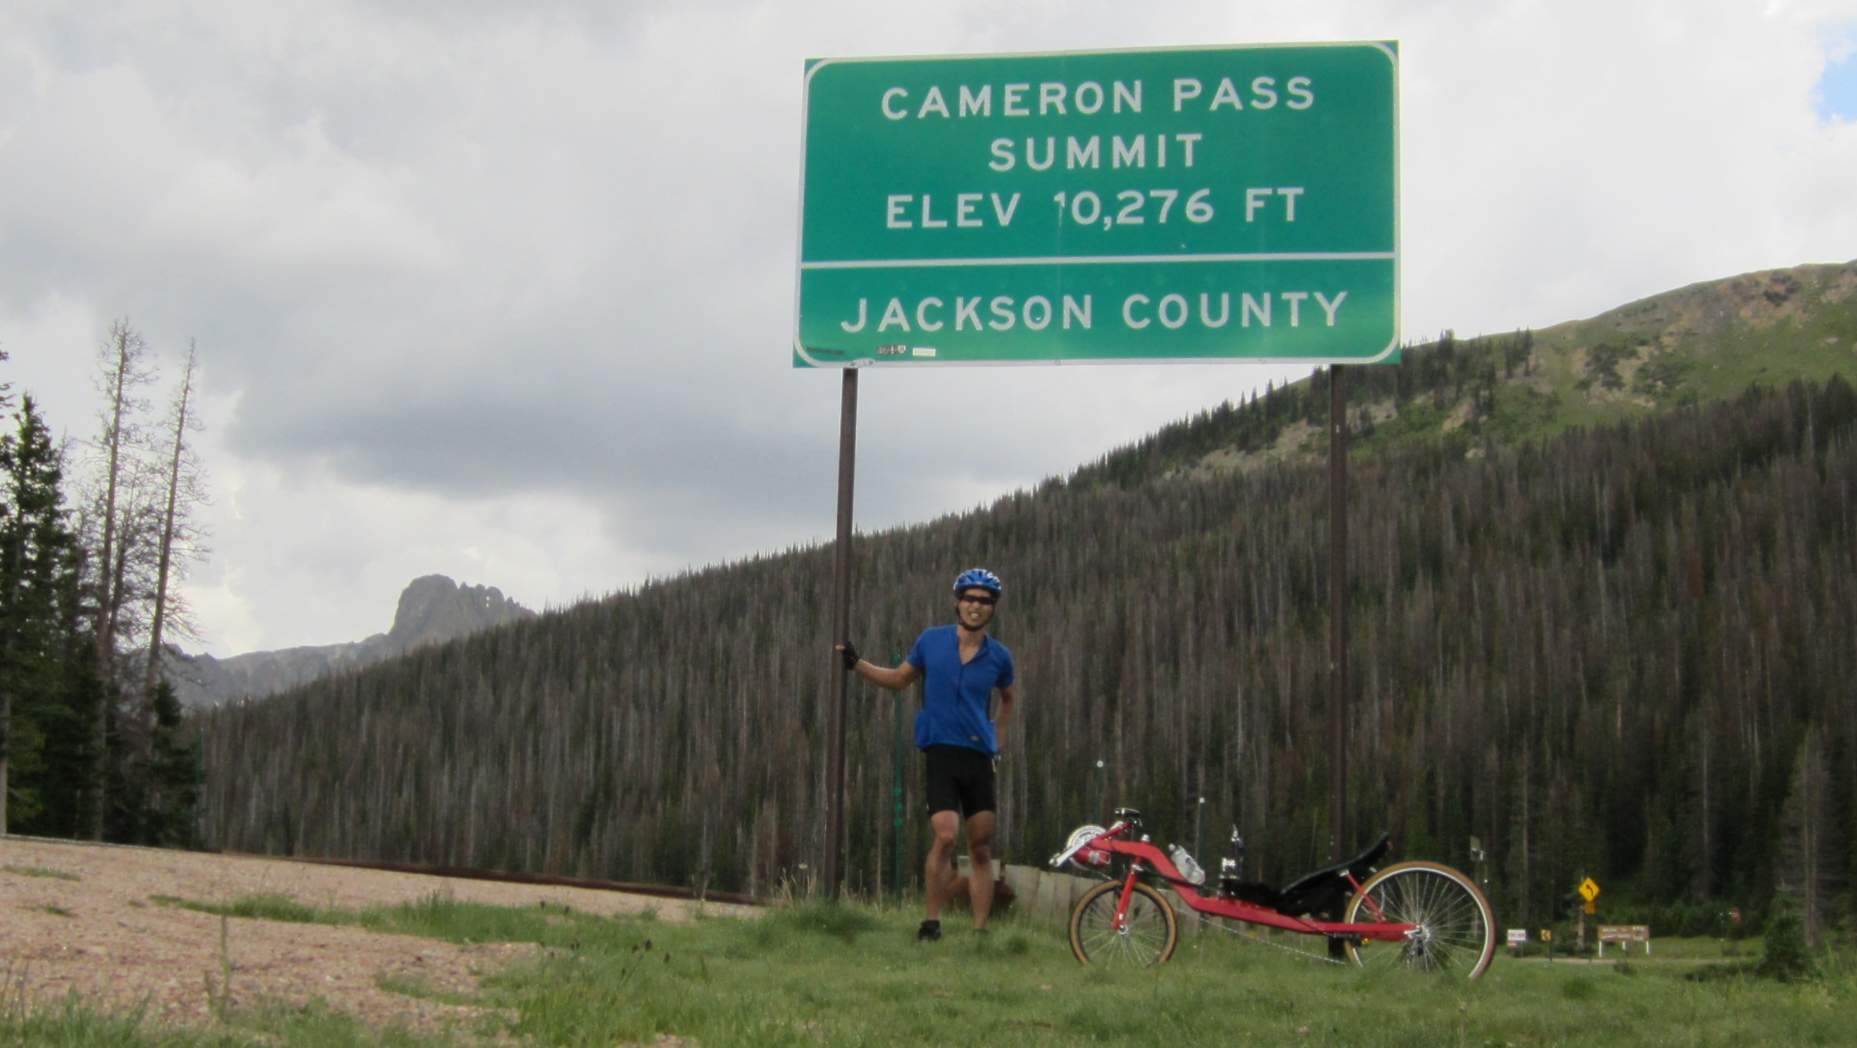 [Mile 70] Made it to the top of Cameron Pass.